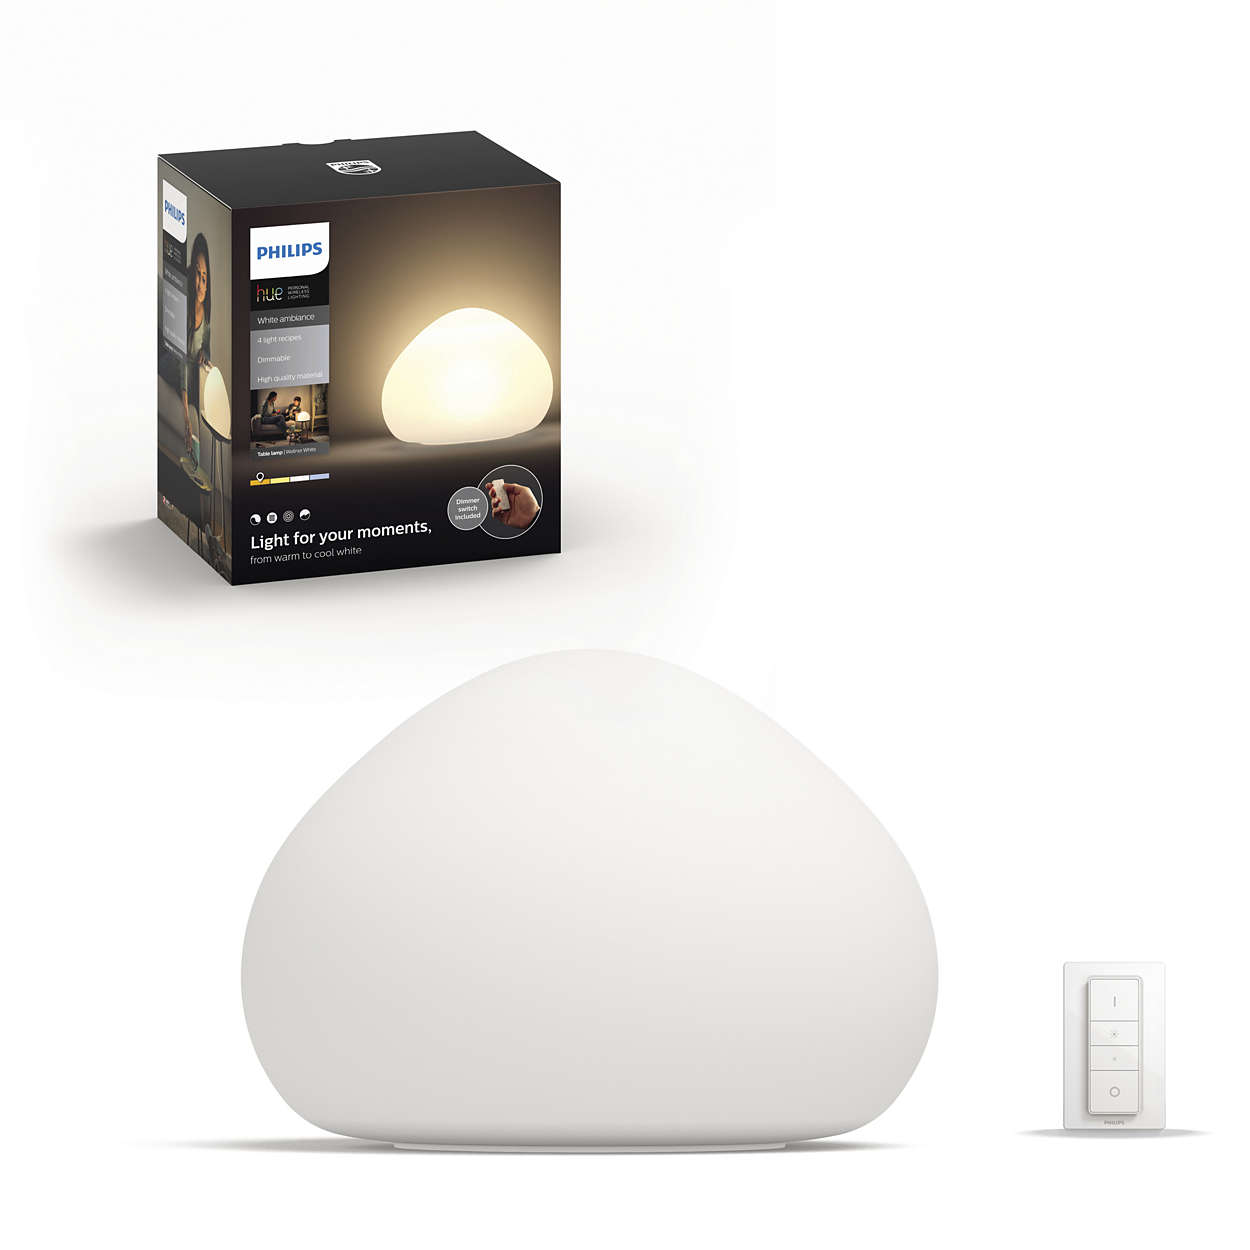 Hue White Ambiance Wellner Table Lamp 4440156p7 Philips